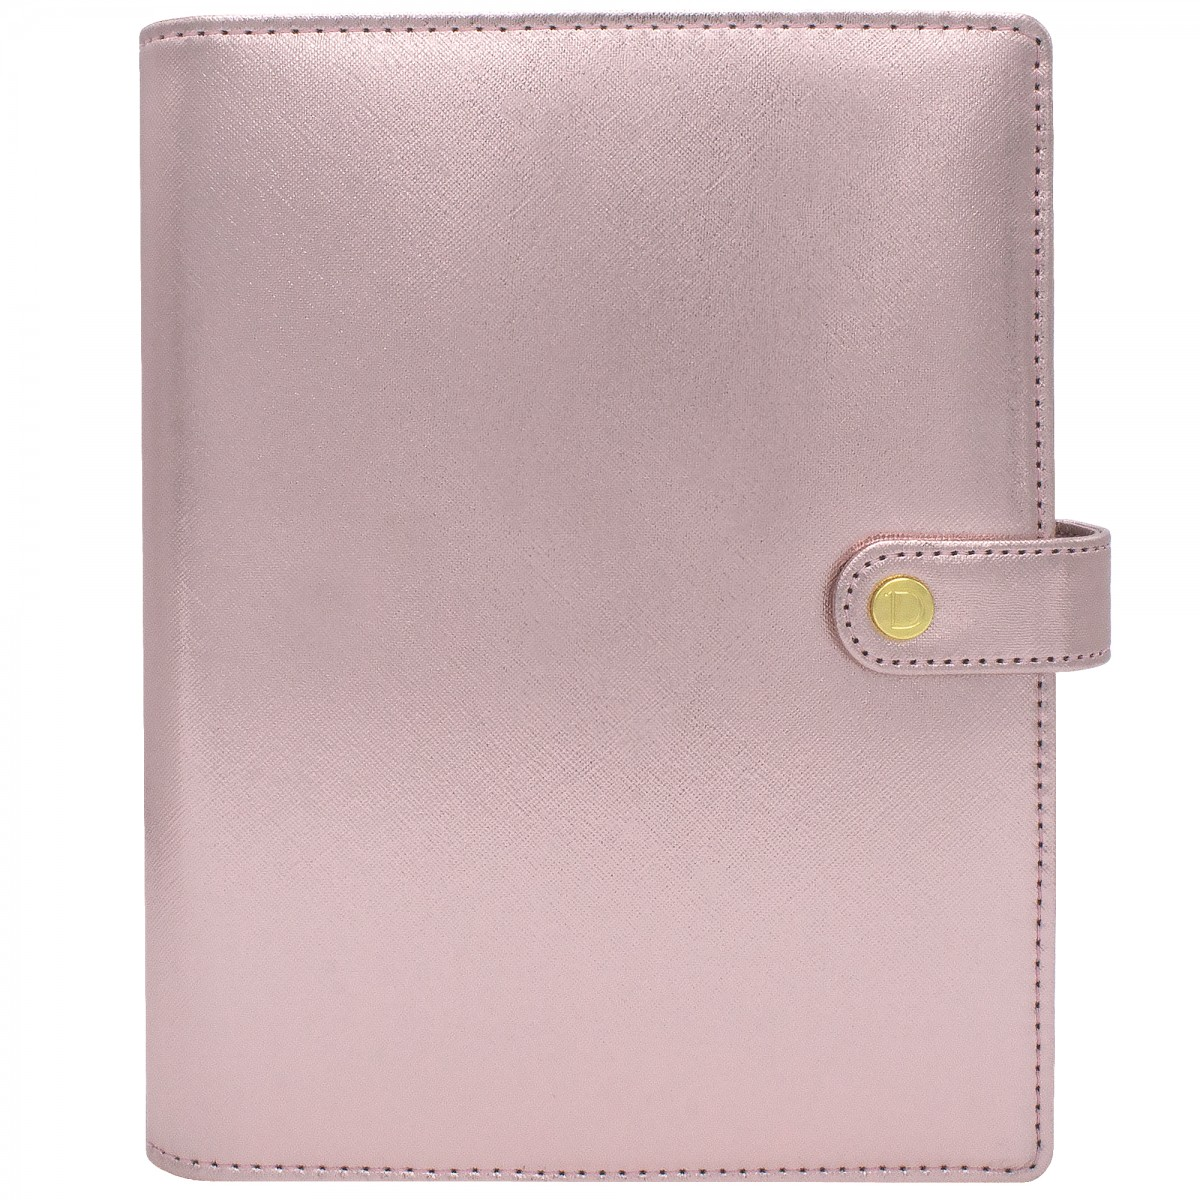 DISCAGENDA DIVA ROSEGOLD COVER LARGE SNAP CLOSURE